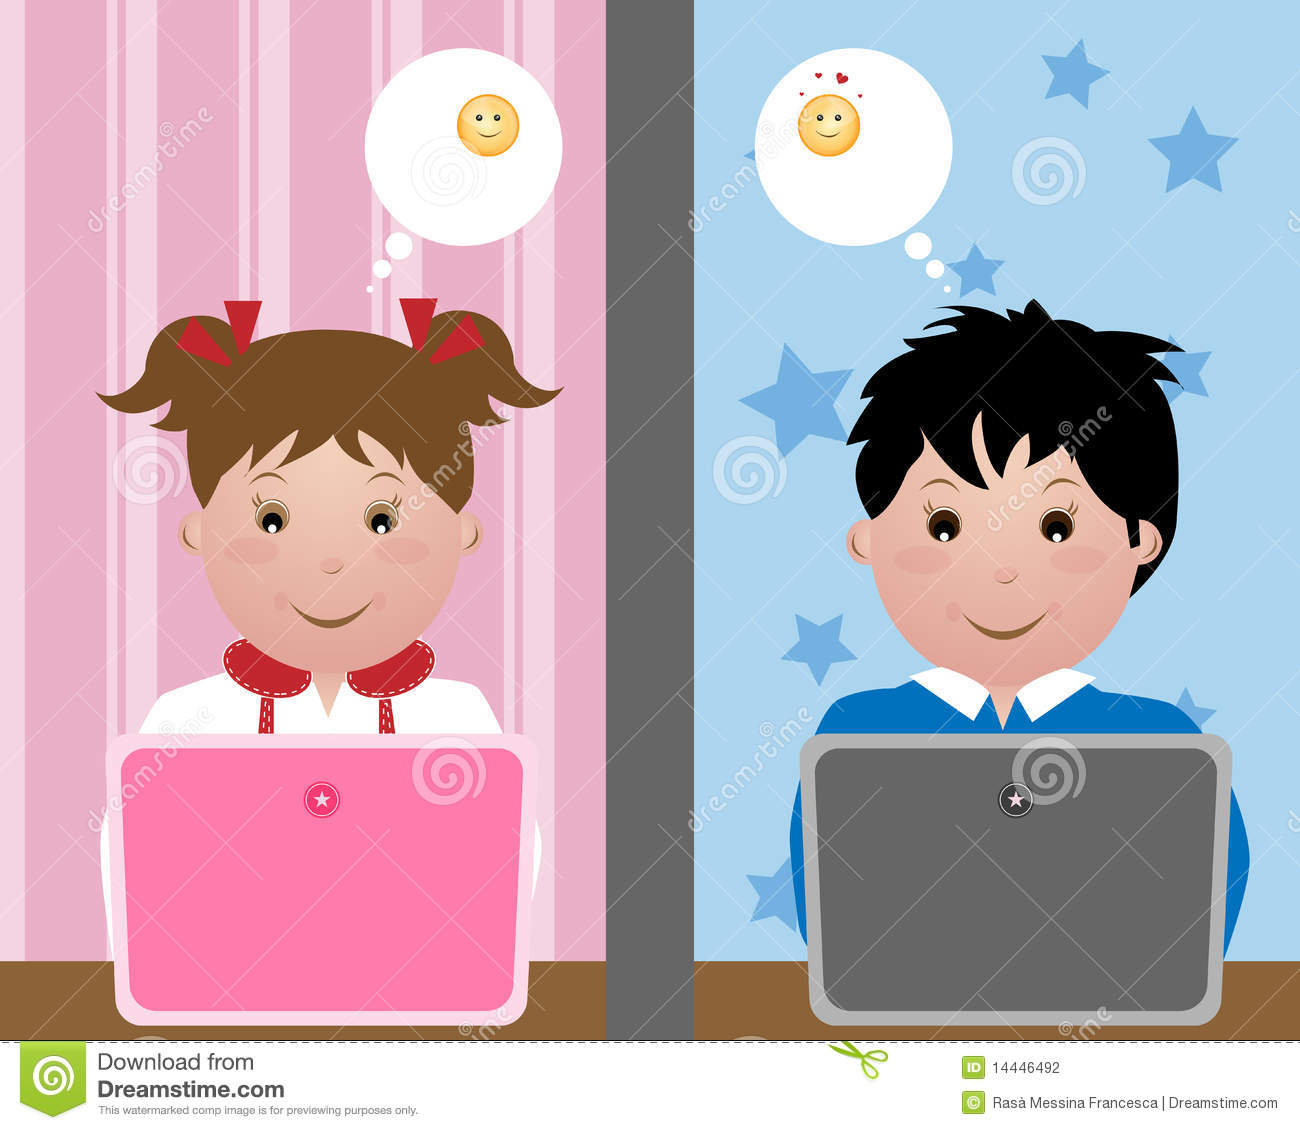 kid chat rooms for 10 and up